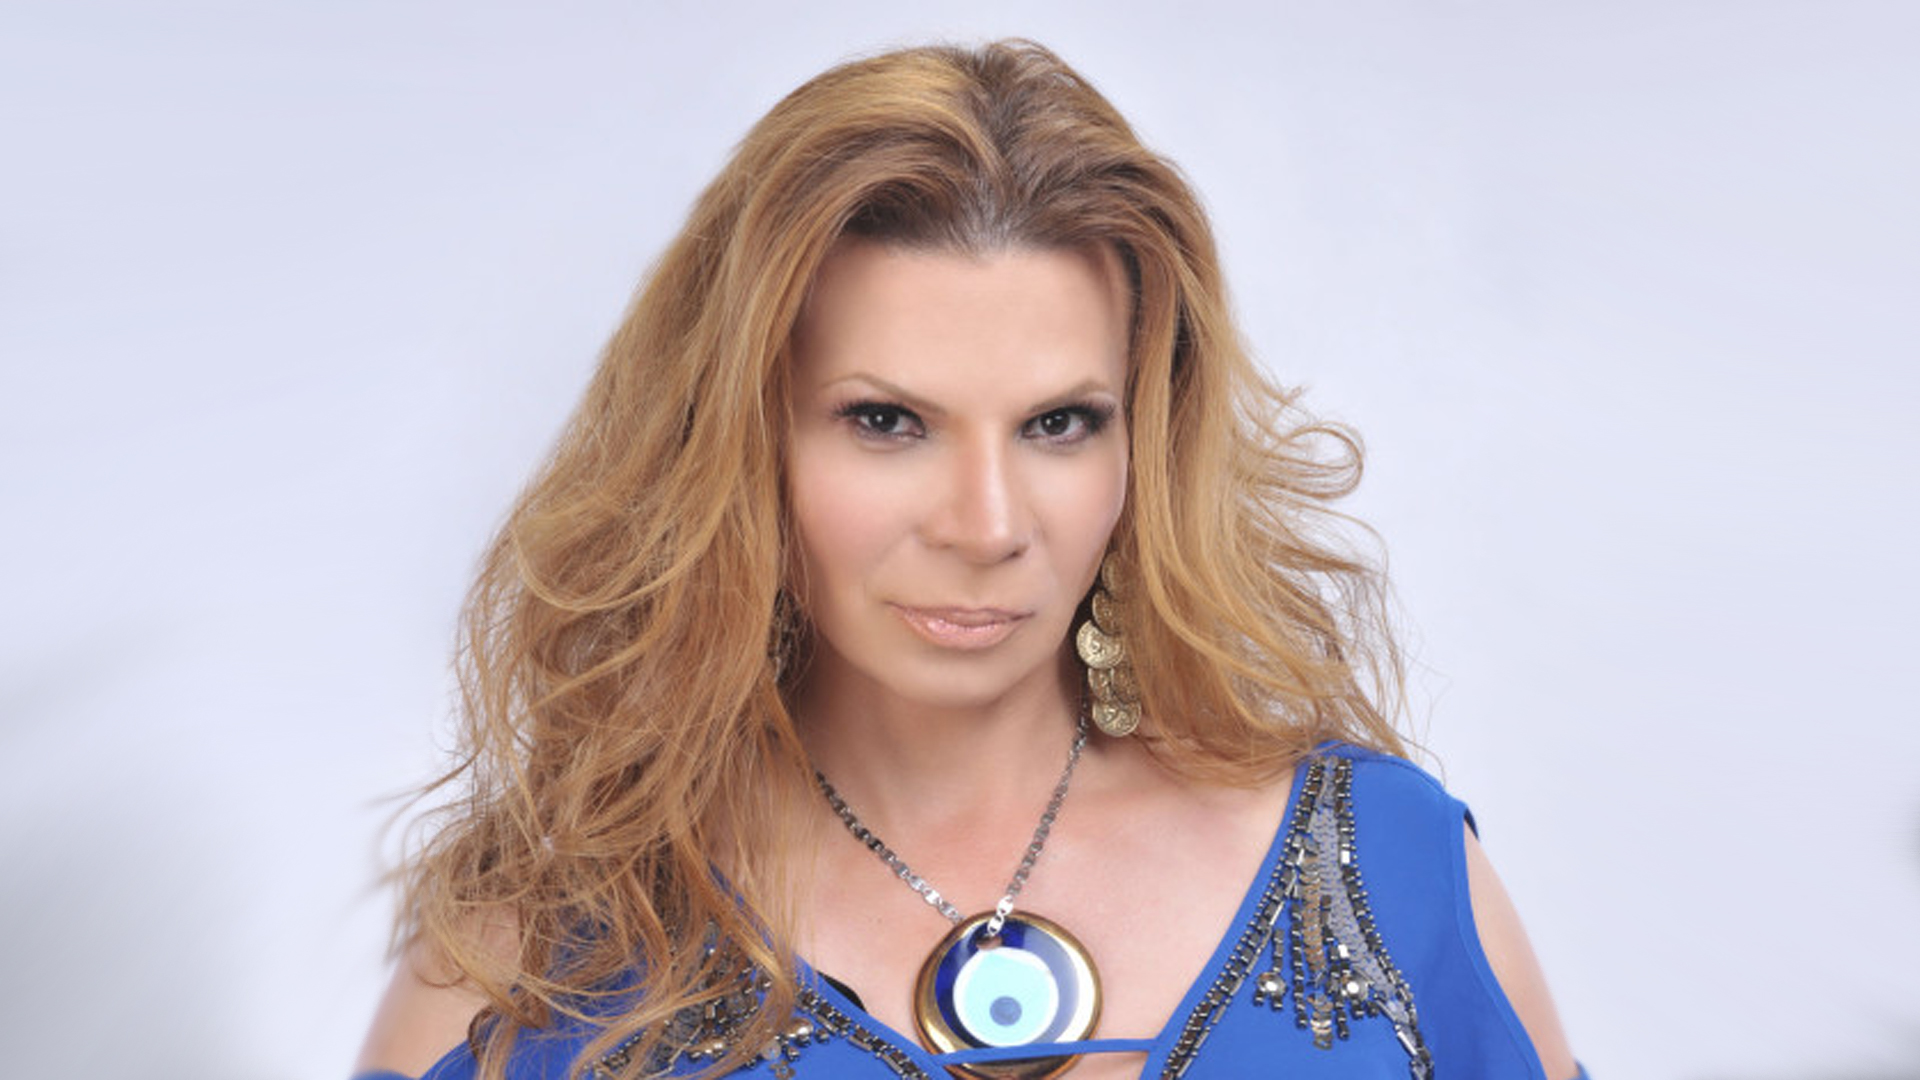 http://www.telemundo.com/sites/nbcutelemundo/files/images/promo/video_clip/2015/08/13/mhoni-vidente.jpg